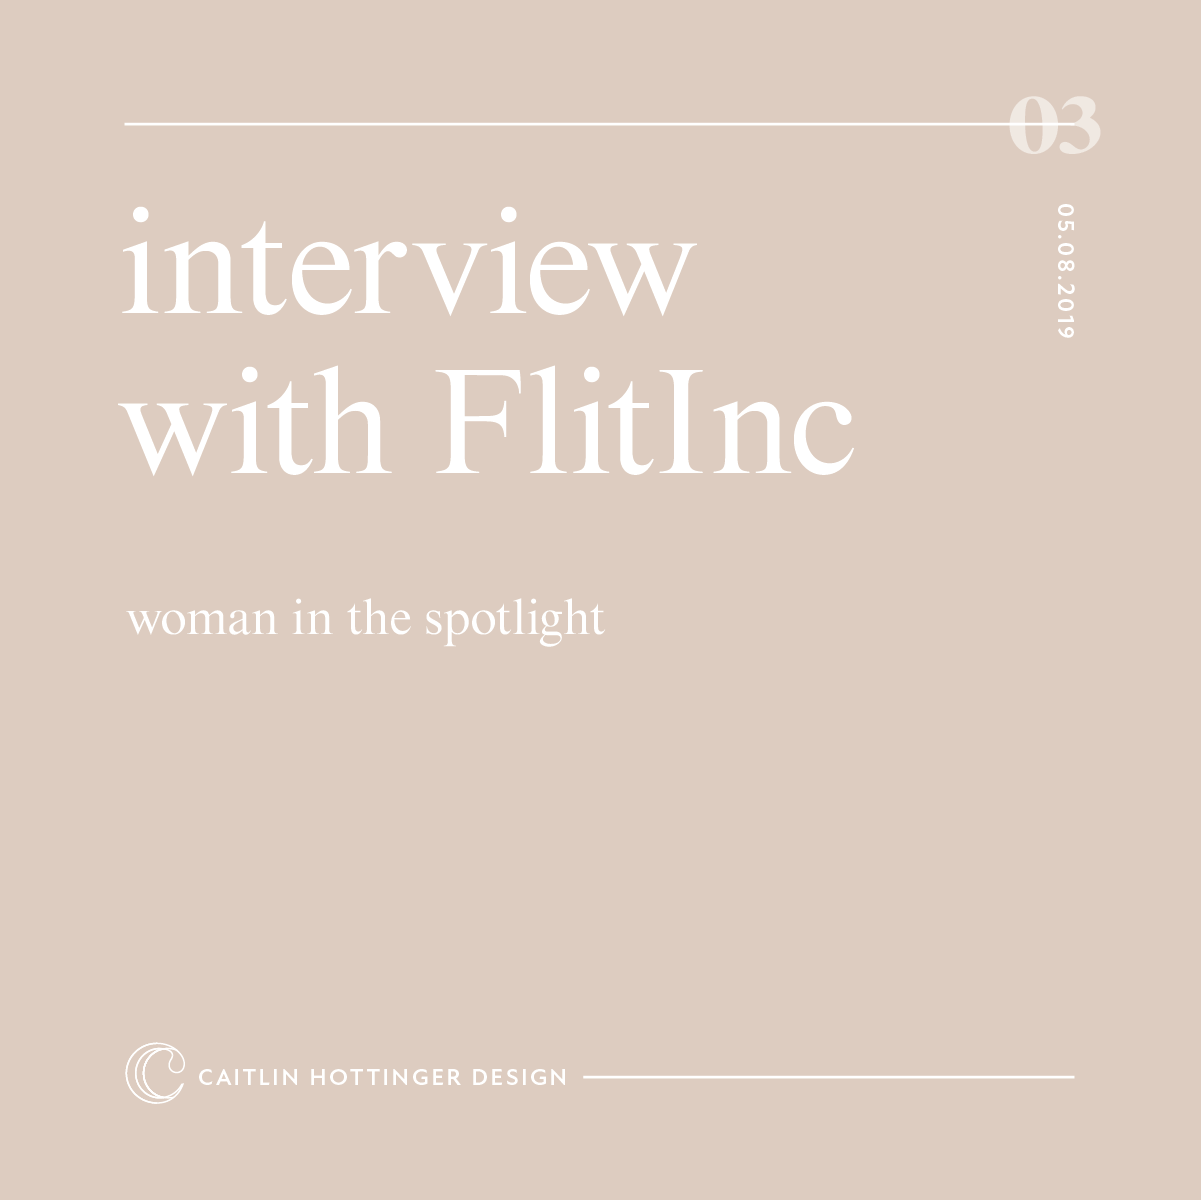 flitinc interview caitlin hottinger design blog